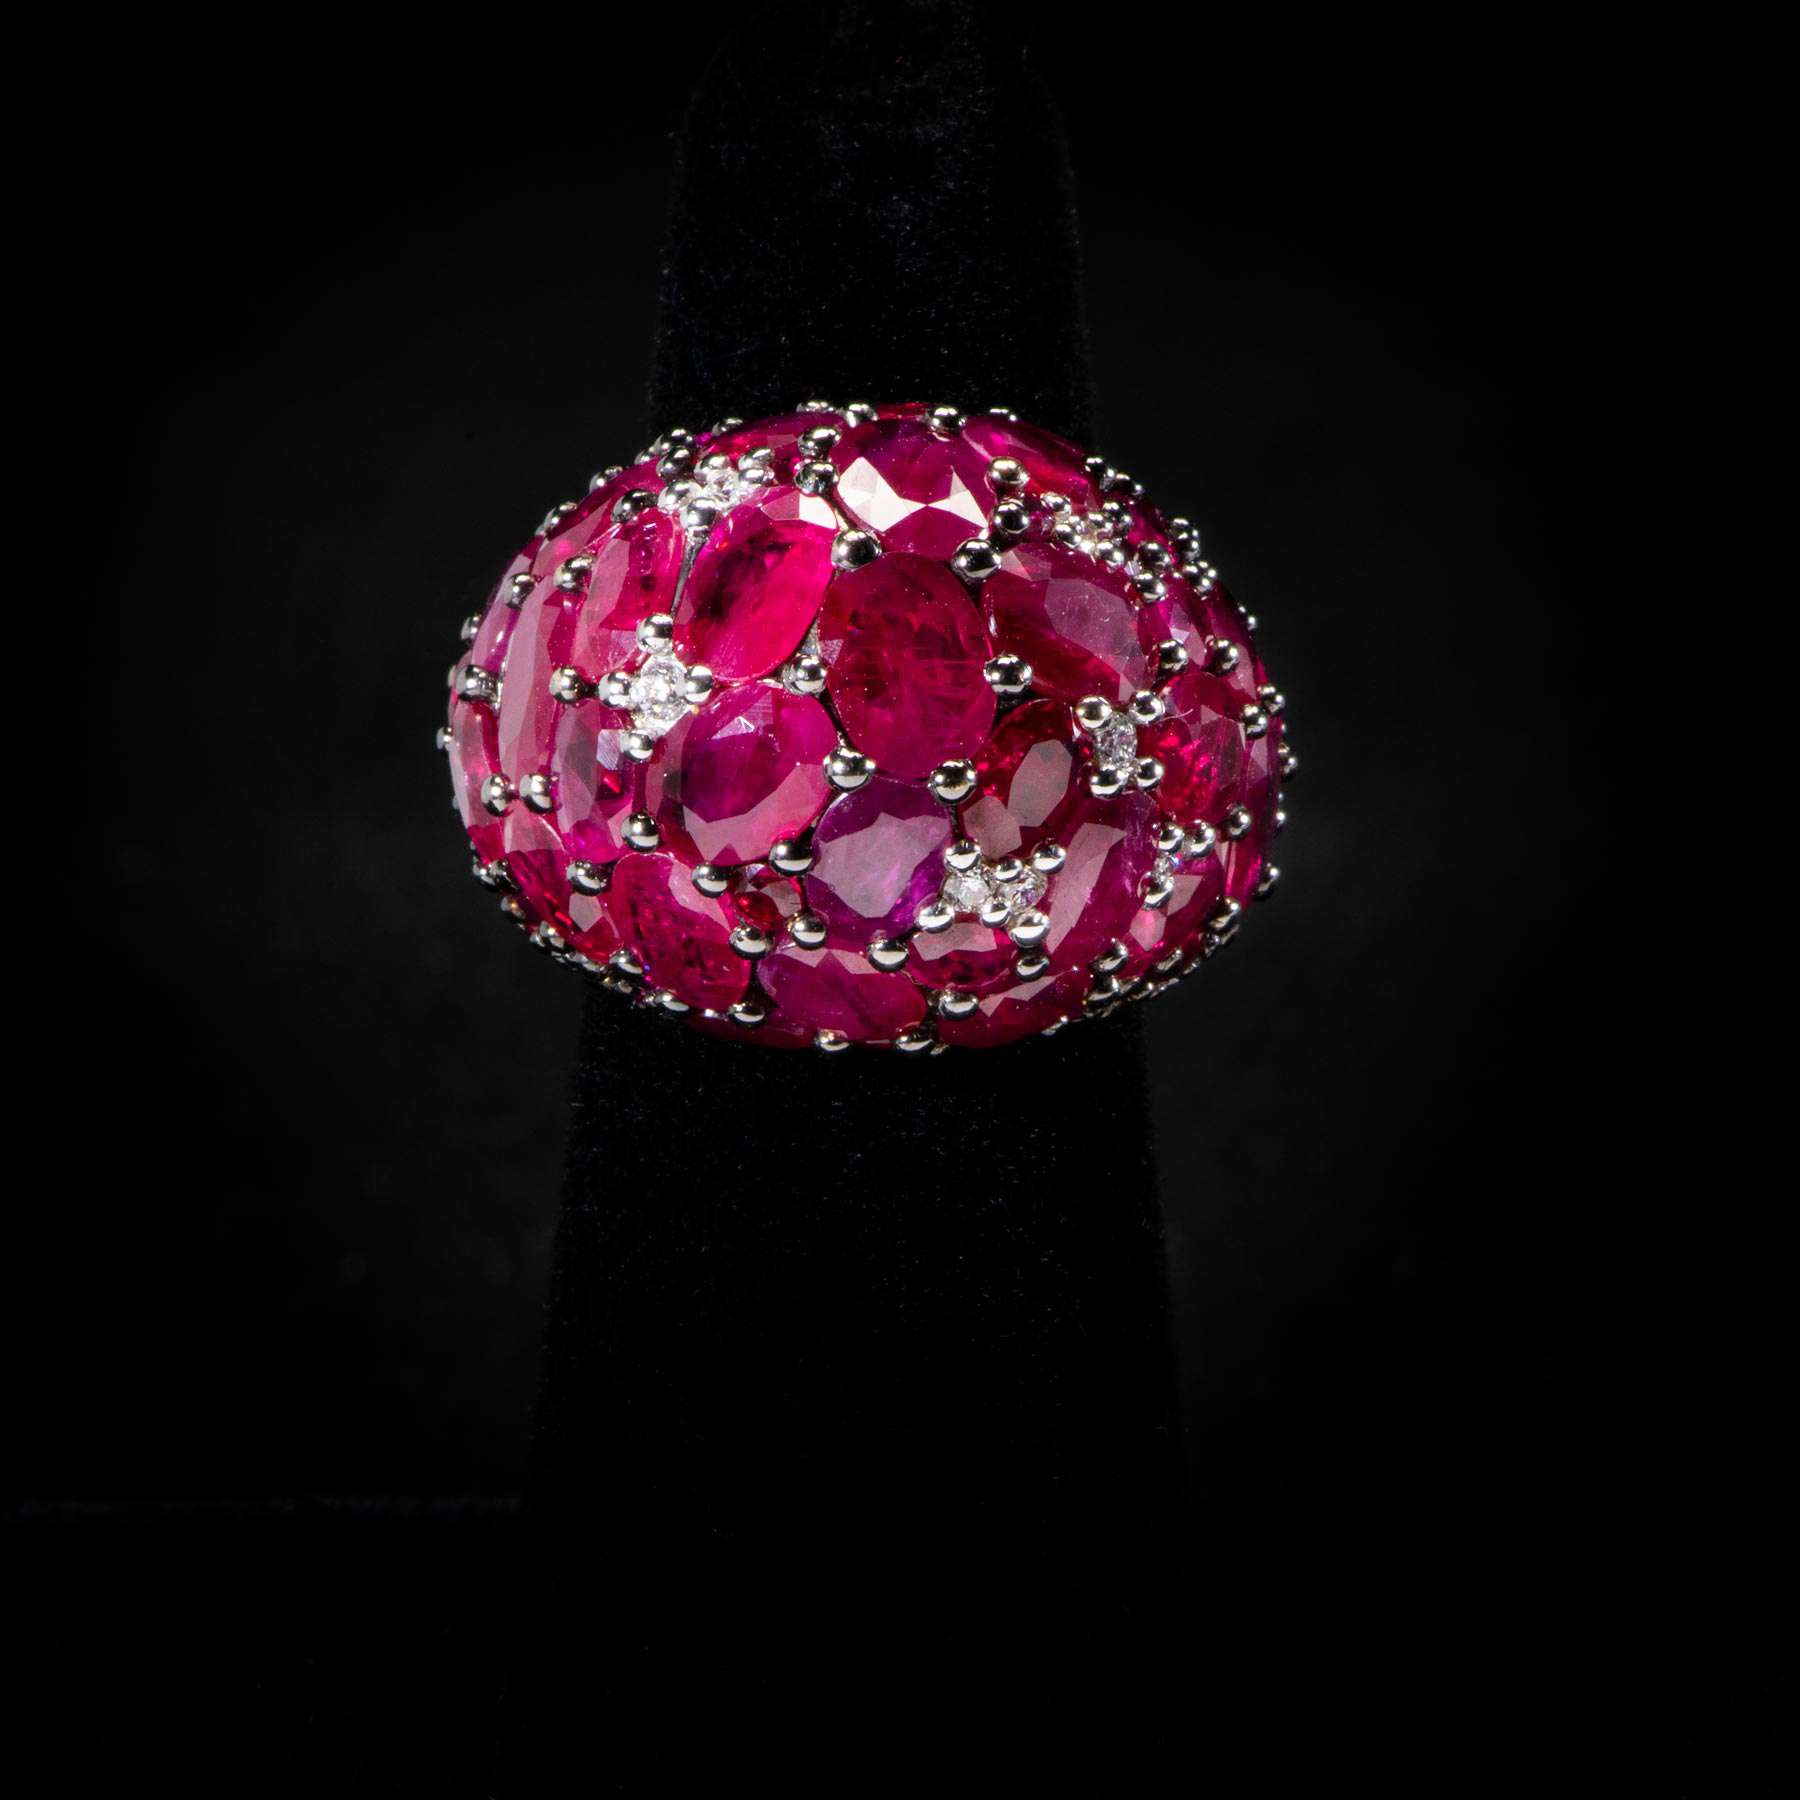 173-21IEXE 18K Y/G Ring 19.91Cts of Rubies & 4.1Cts Dias